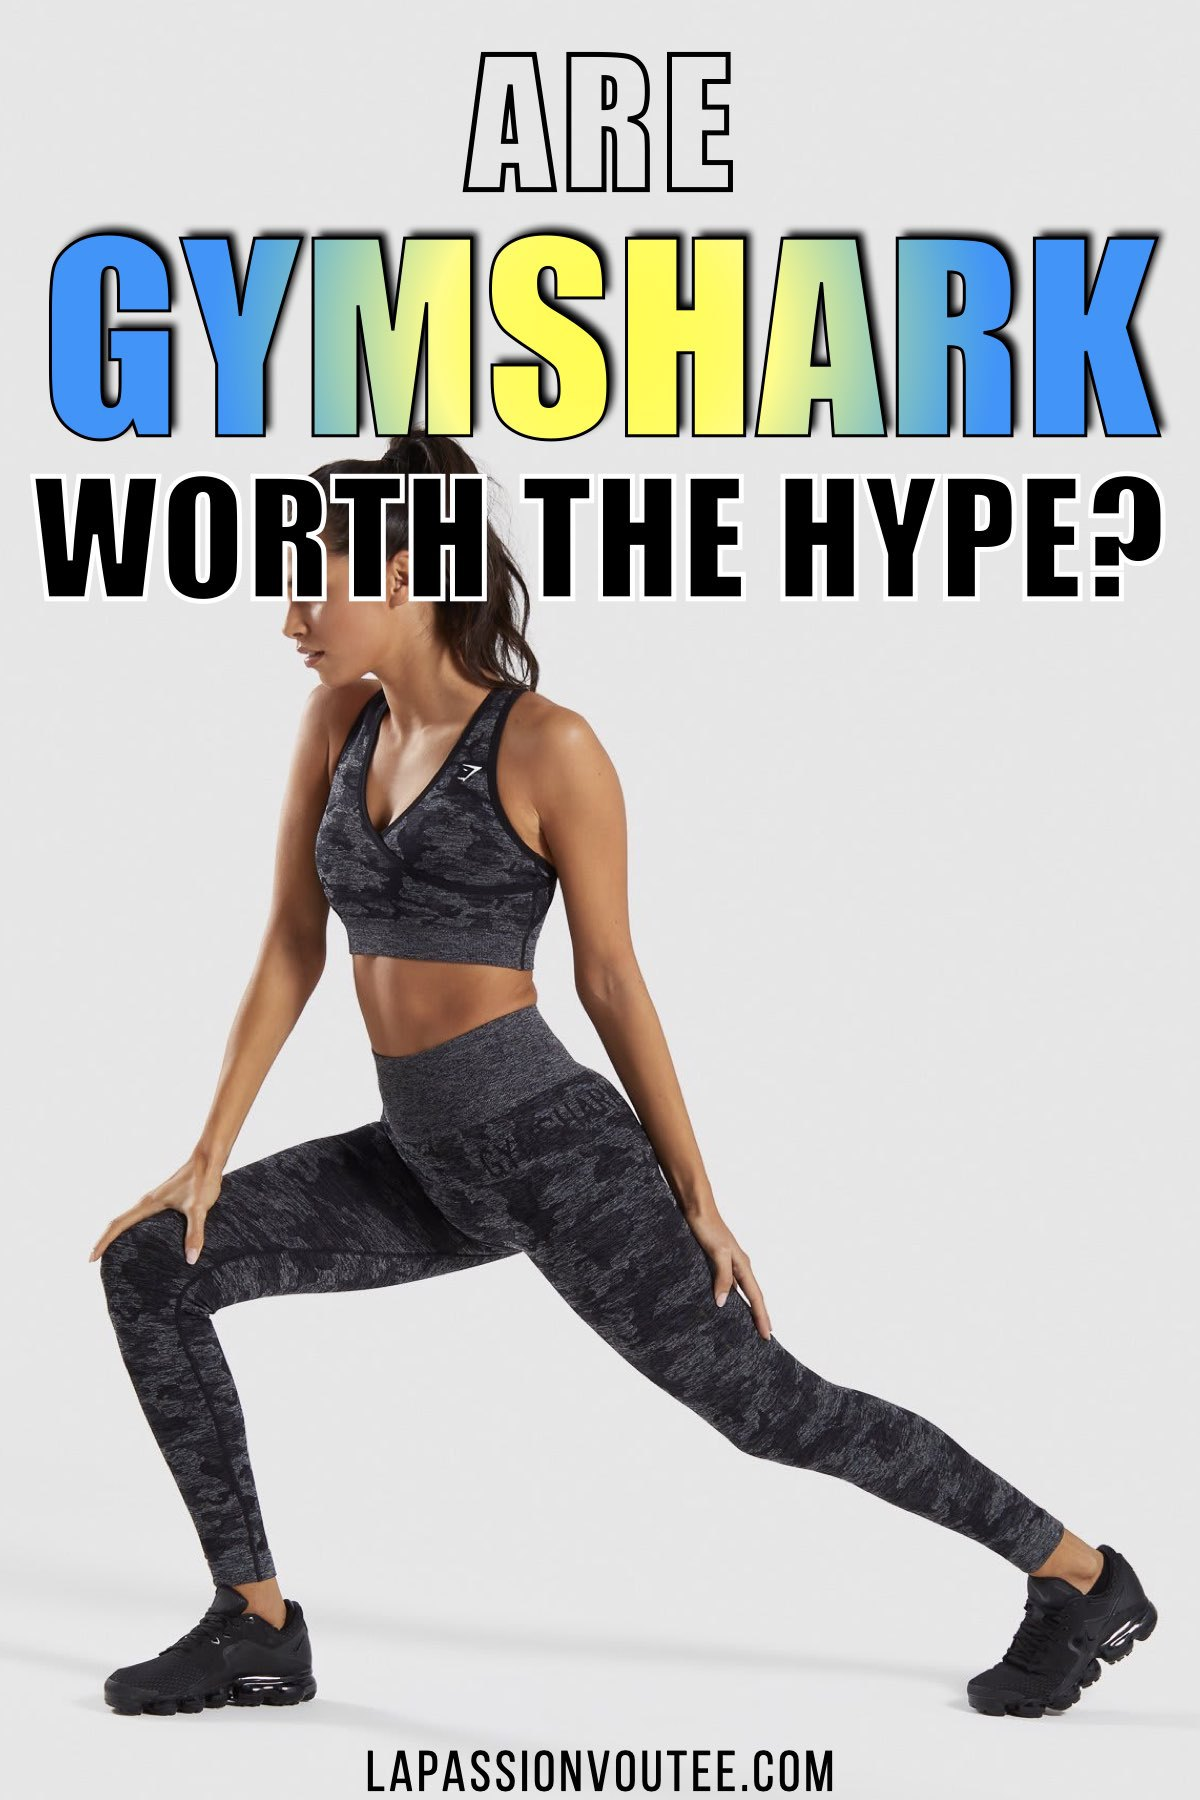 Are Gymshark leggings REALLY all that good? After much research, these are the best of the best Gymshark leggings ever. These athleisure yoga pants have the perfect amount of compression while enhancing the appearance of your bum. Discover the Gymshark Flex leggings, Cameo yoga pants, Fit leggings and many more. #gymsharkwomen #leggings